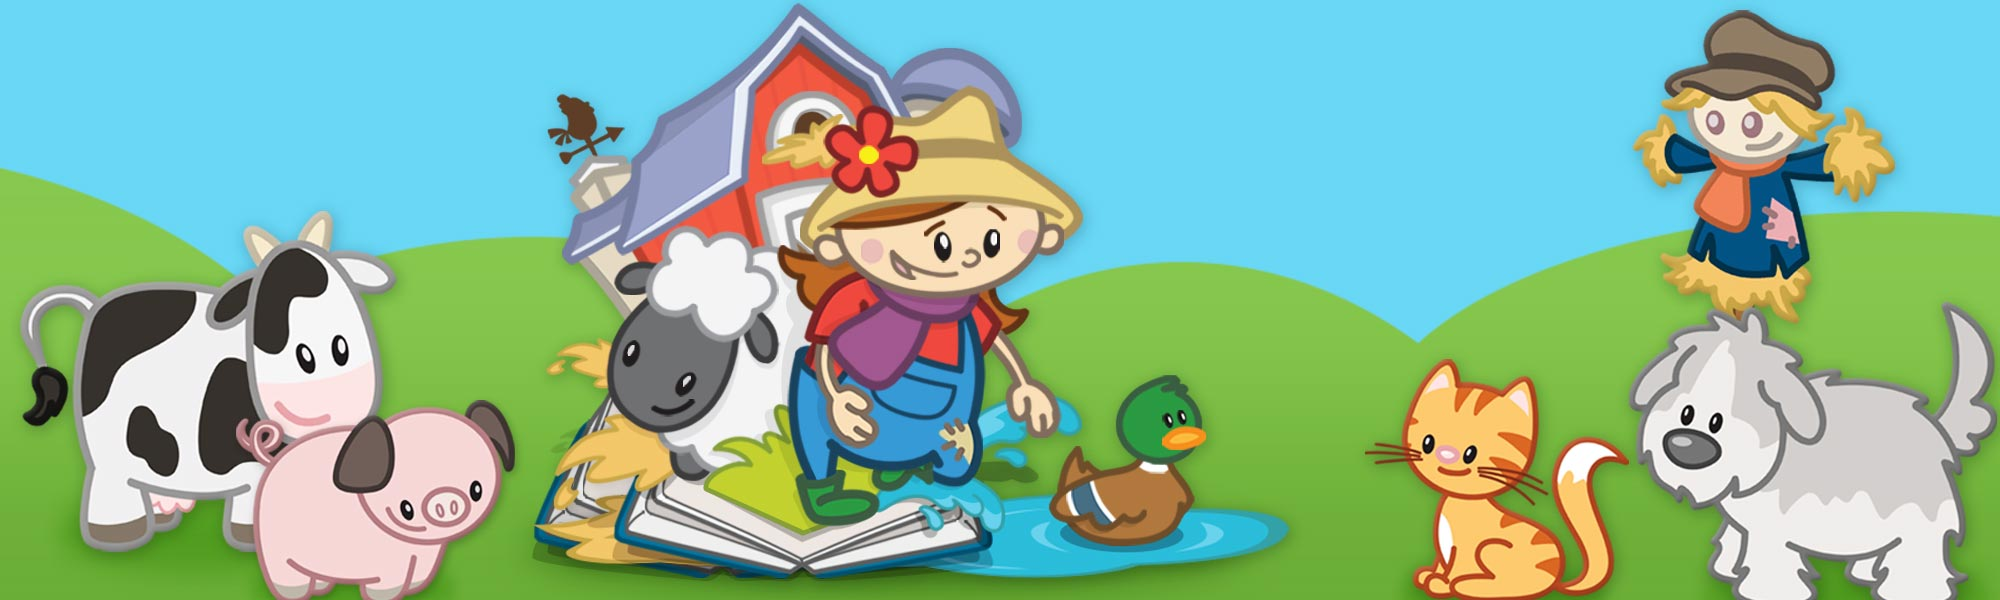 Farm 123 Counting App for Kids - StoryToys Apps